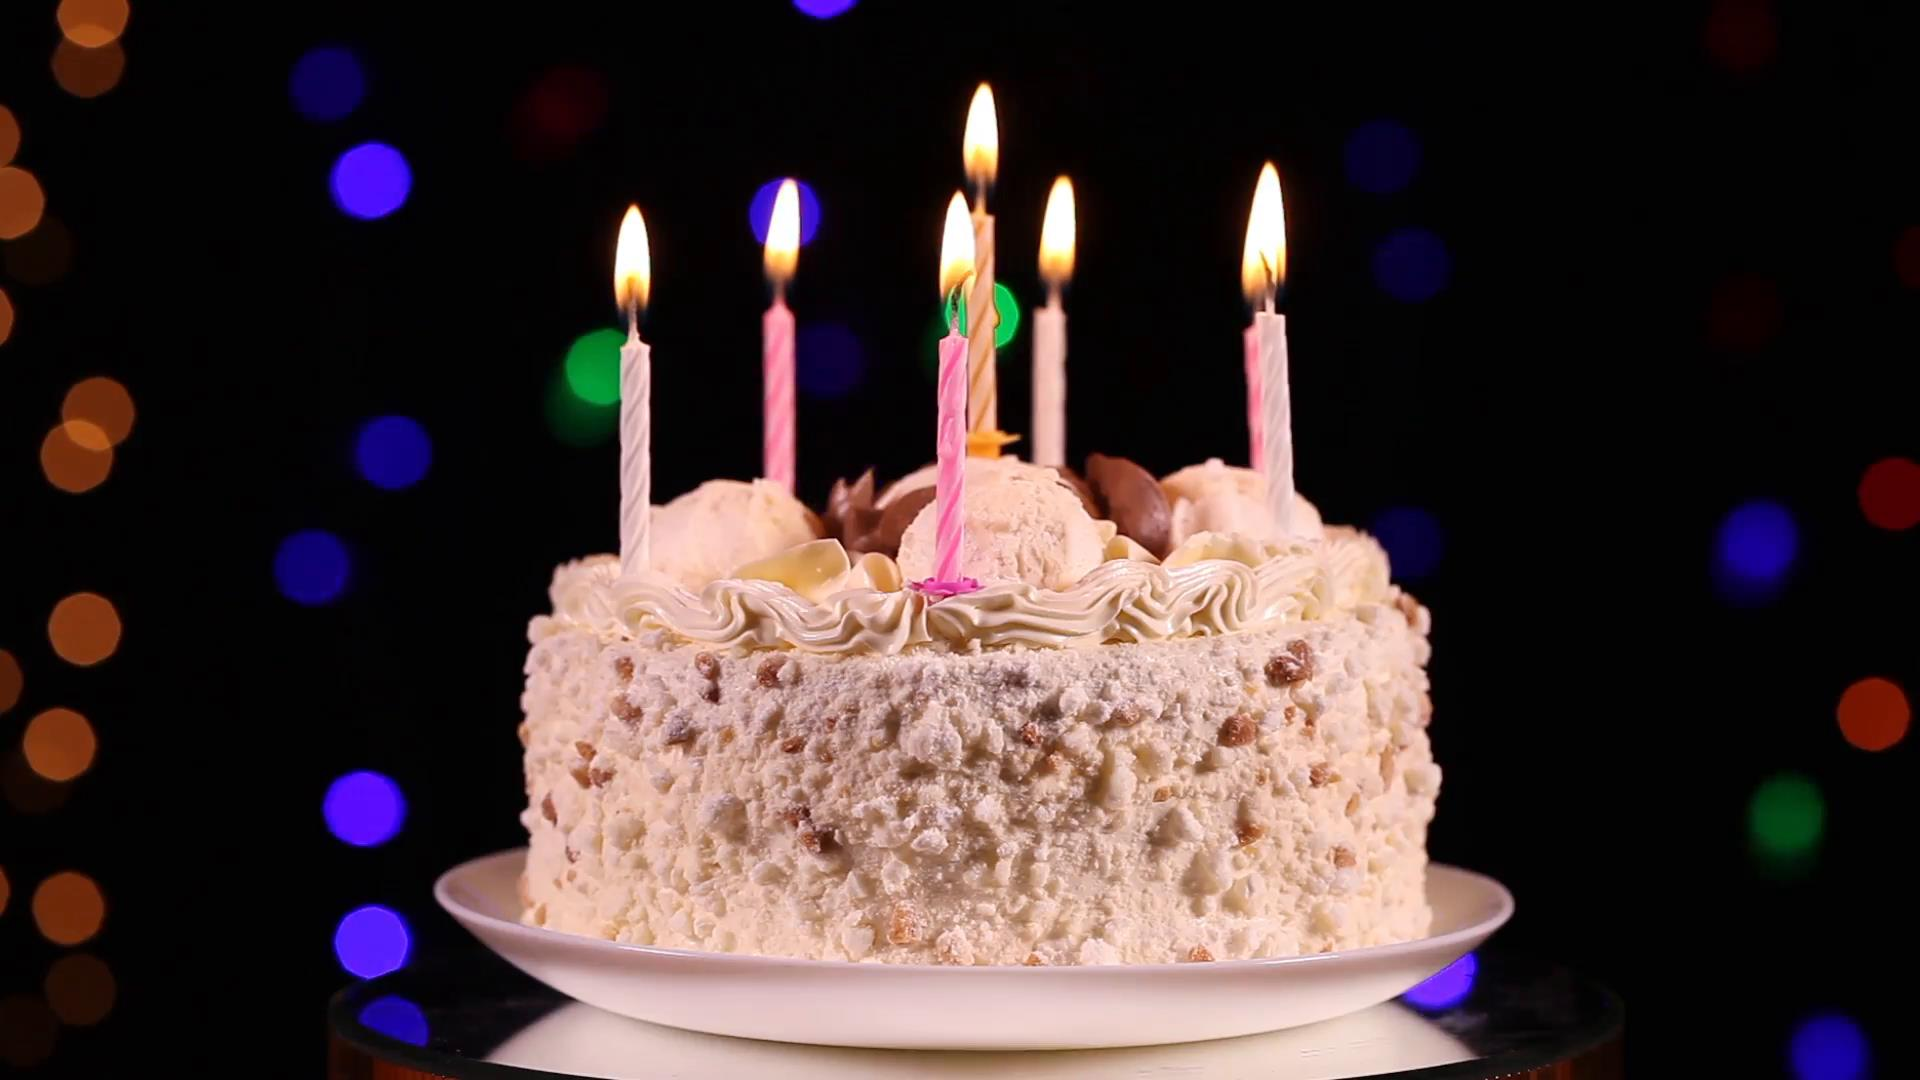 happy birthday cake with candles ; happy-birthday-cake-with-burning-candles-in-front-of-black-background-with-flashing-lights_vagh2n9xnx__F0000